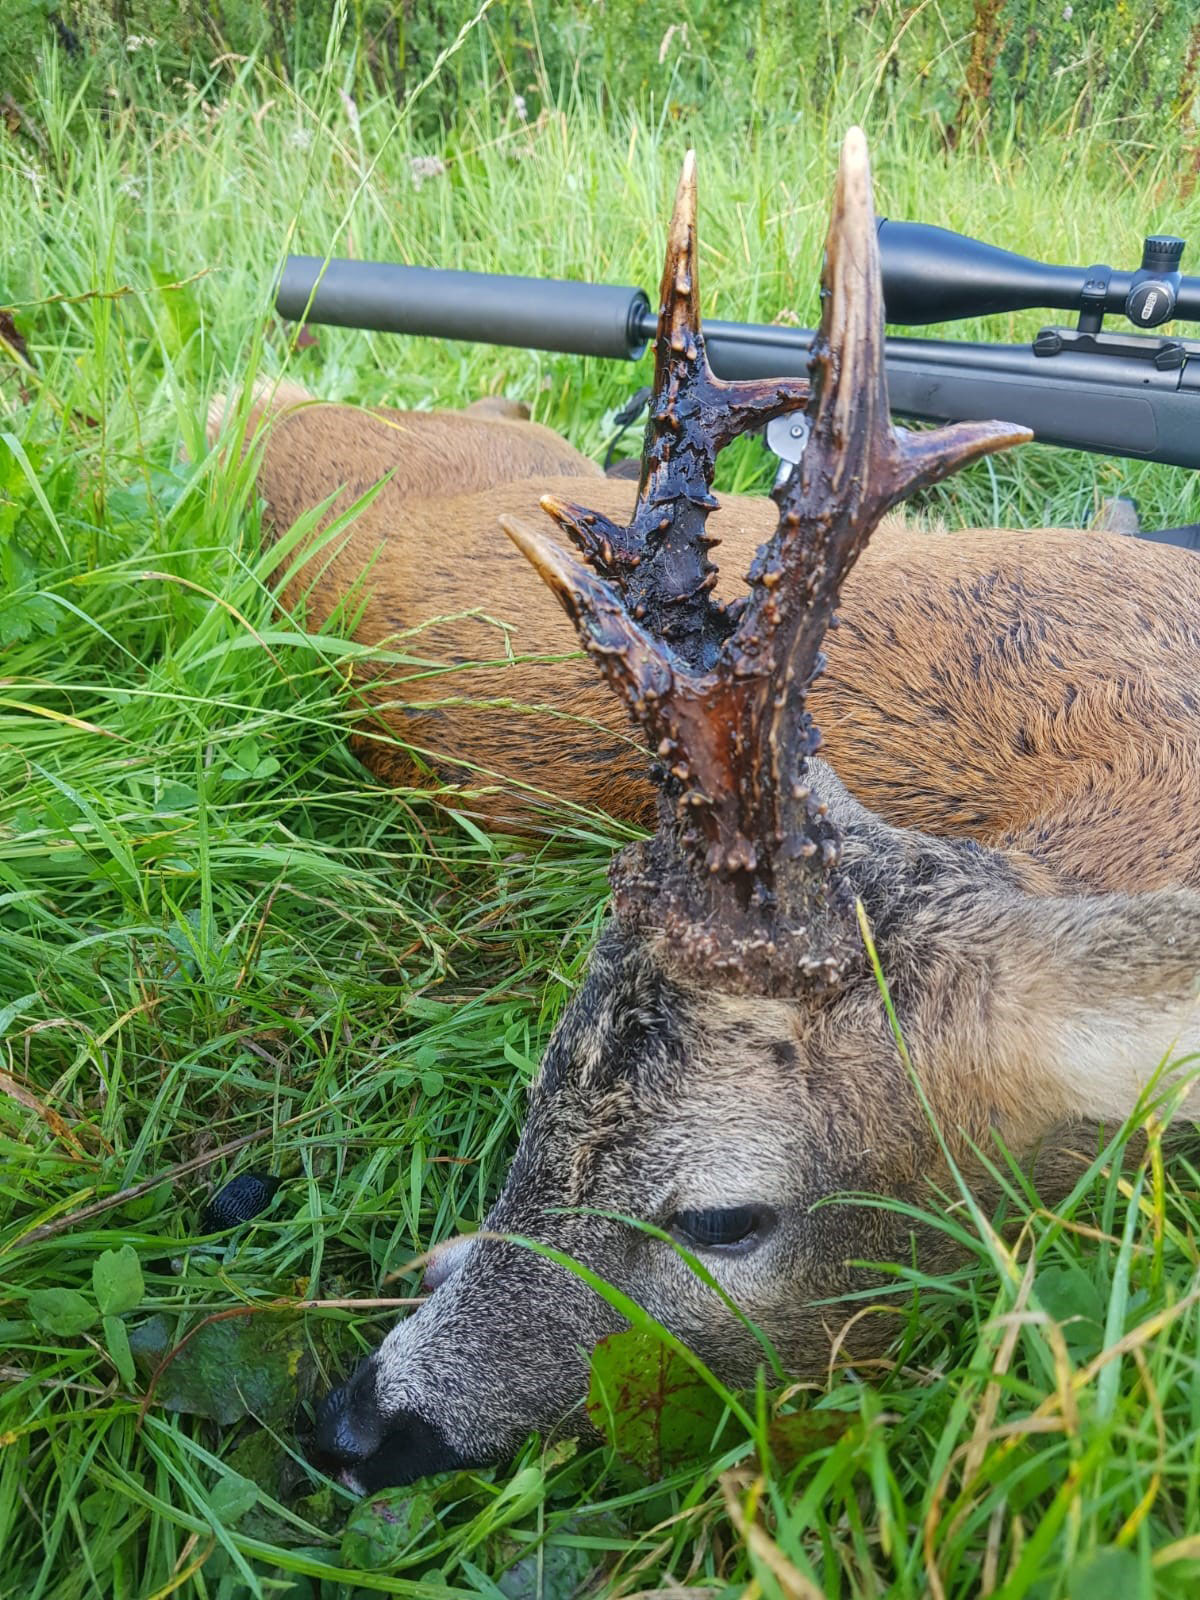 The magnificent, old, possible gold medal roe deer mentioned in the story with the hunter's Sako .270 in the background. Courtesy of Alistair Kinghorn